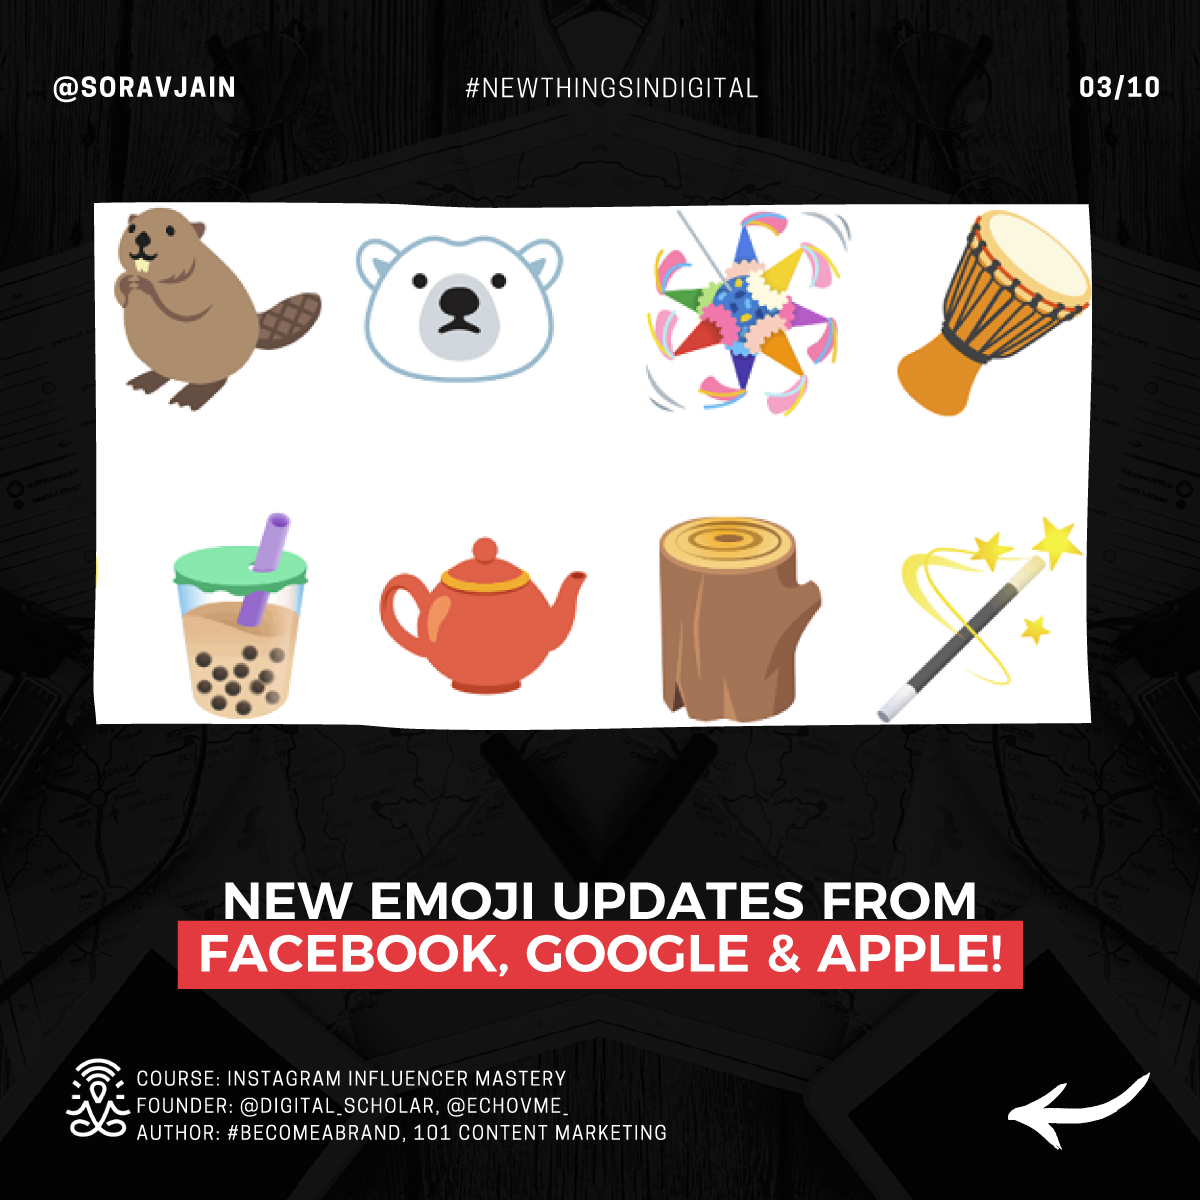 New Emoji updates from Facebook, Google & Apple